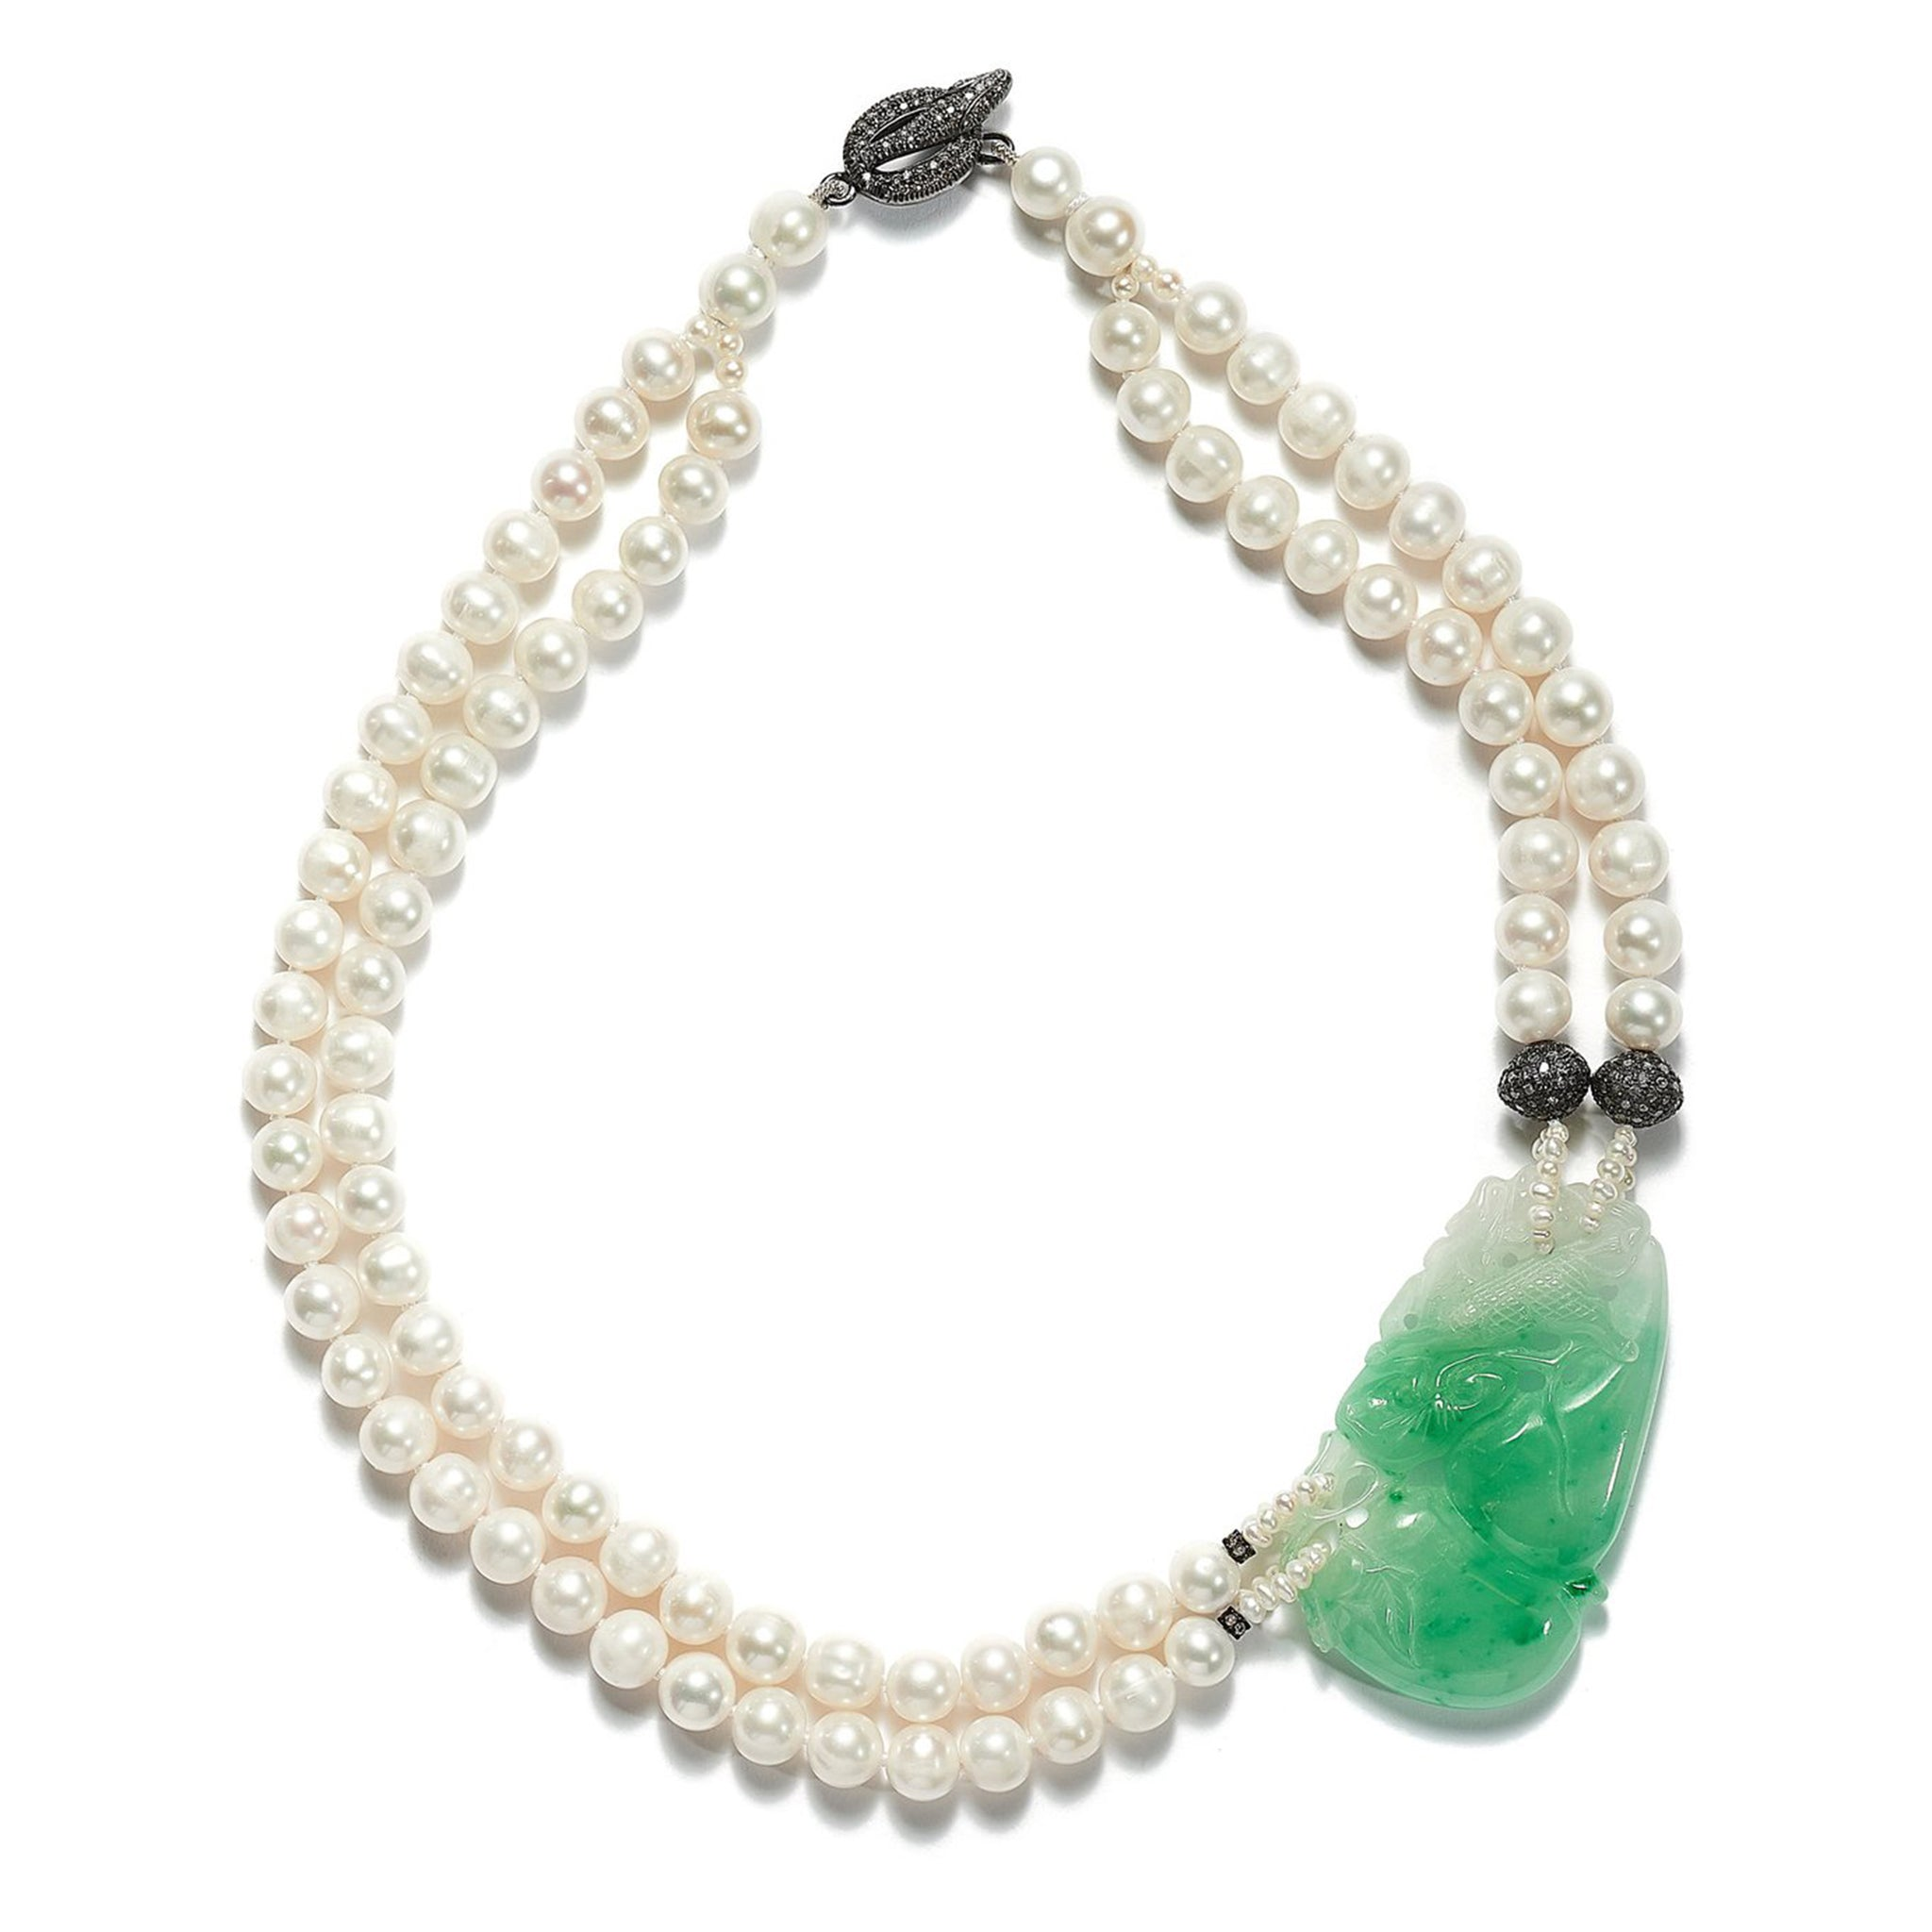 Pearl and Jade Harmony Necklace